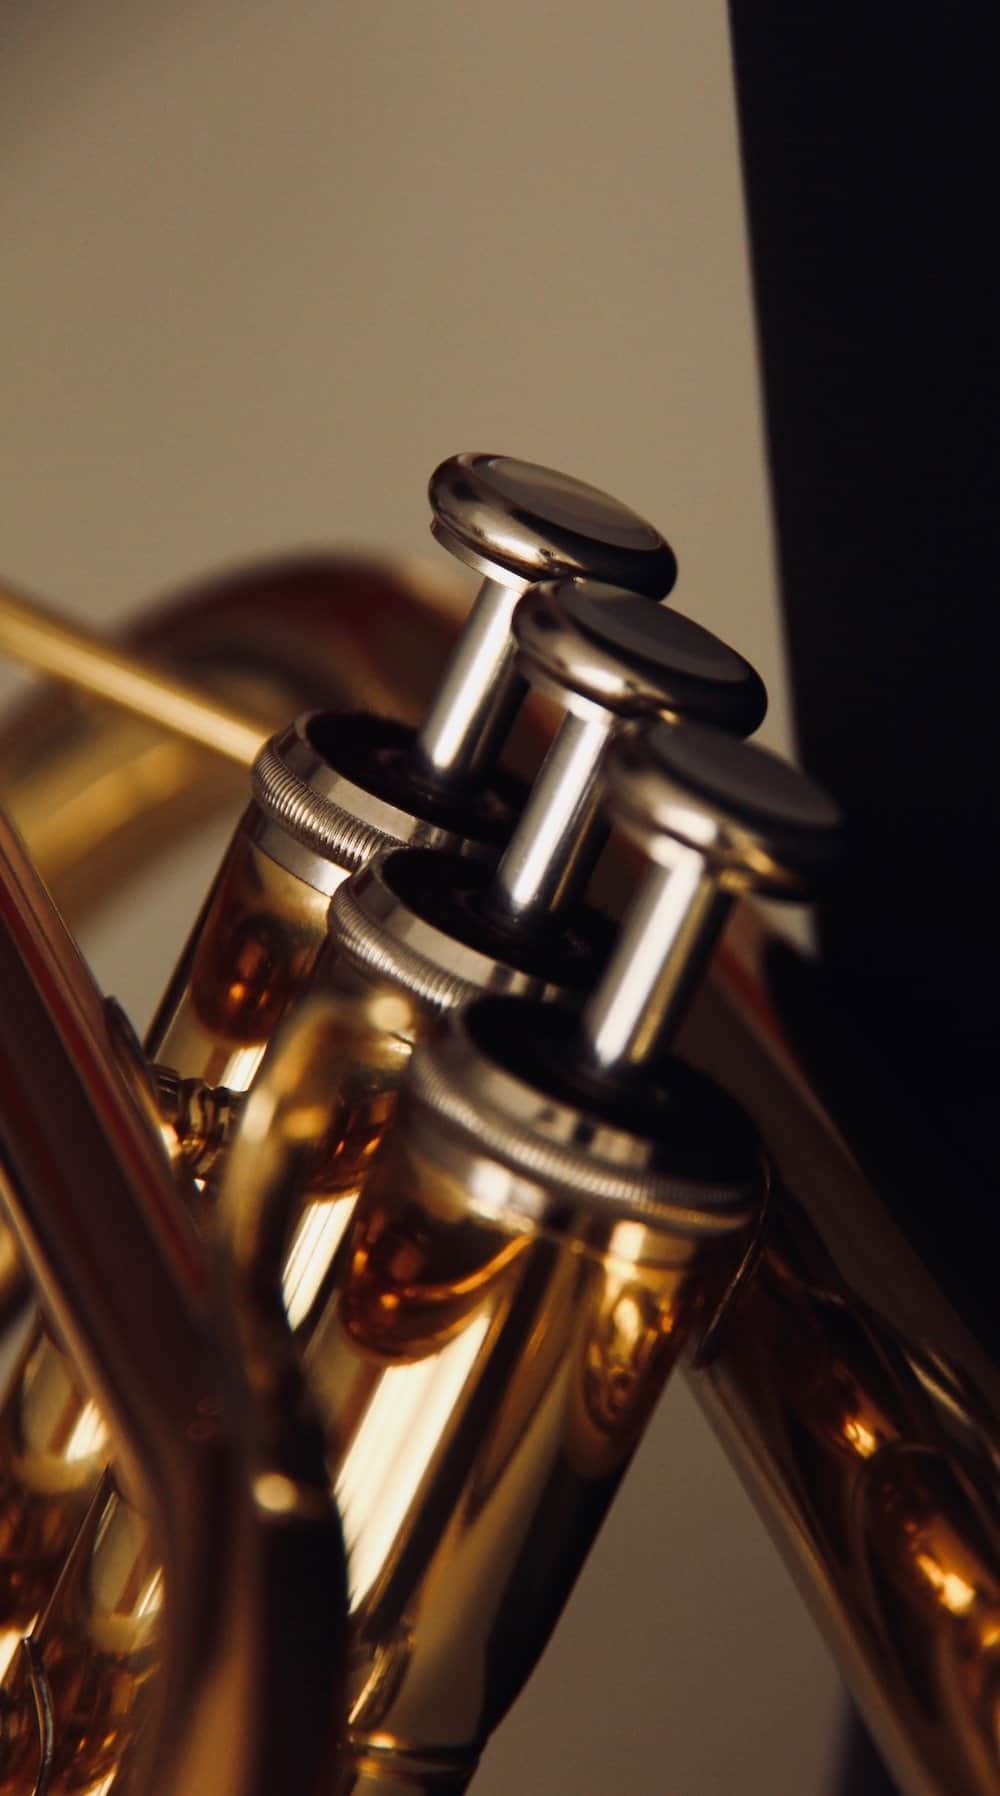 learning trumpet - close up of trumpet valves for tutorial about how to play the trumpet